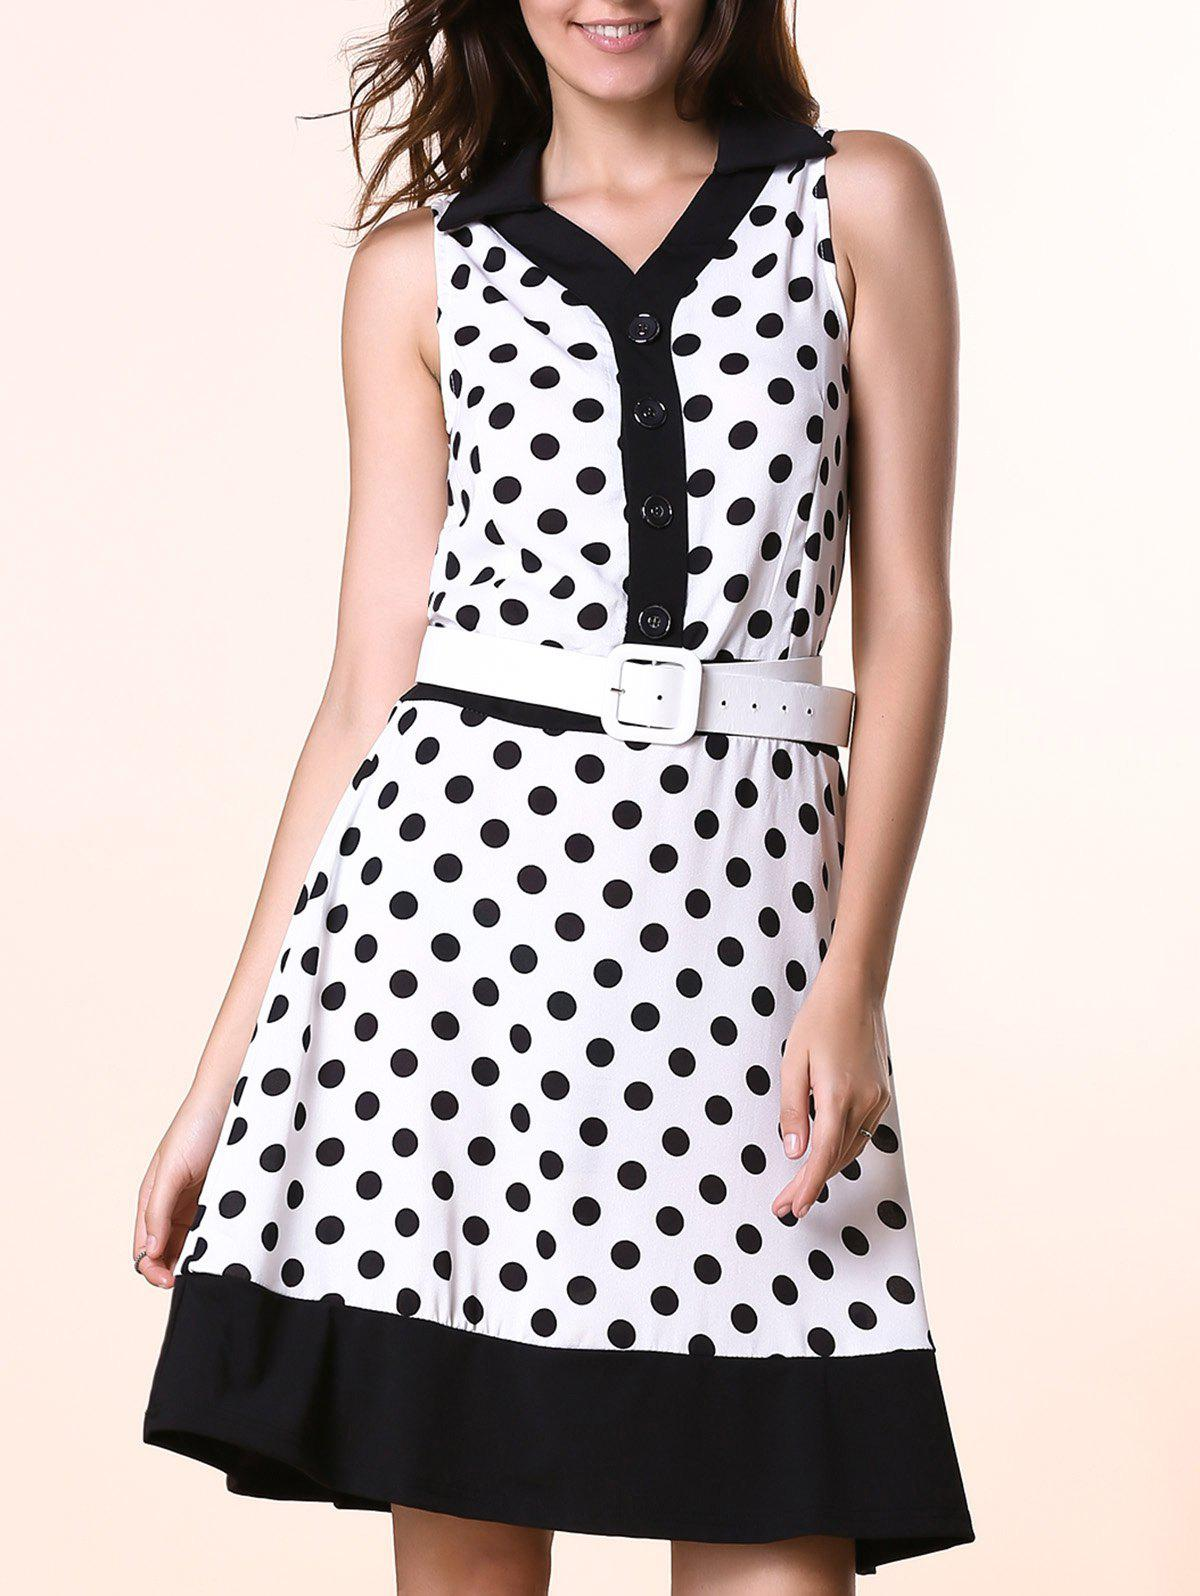 Elegant Flat Collar Sleeveless Polka Dot Buttoned Women's Dress - WHITE XL